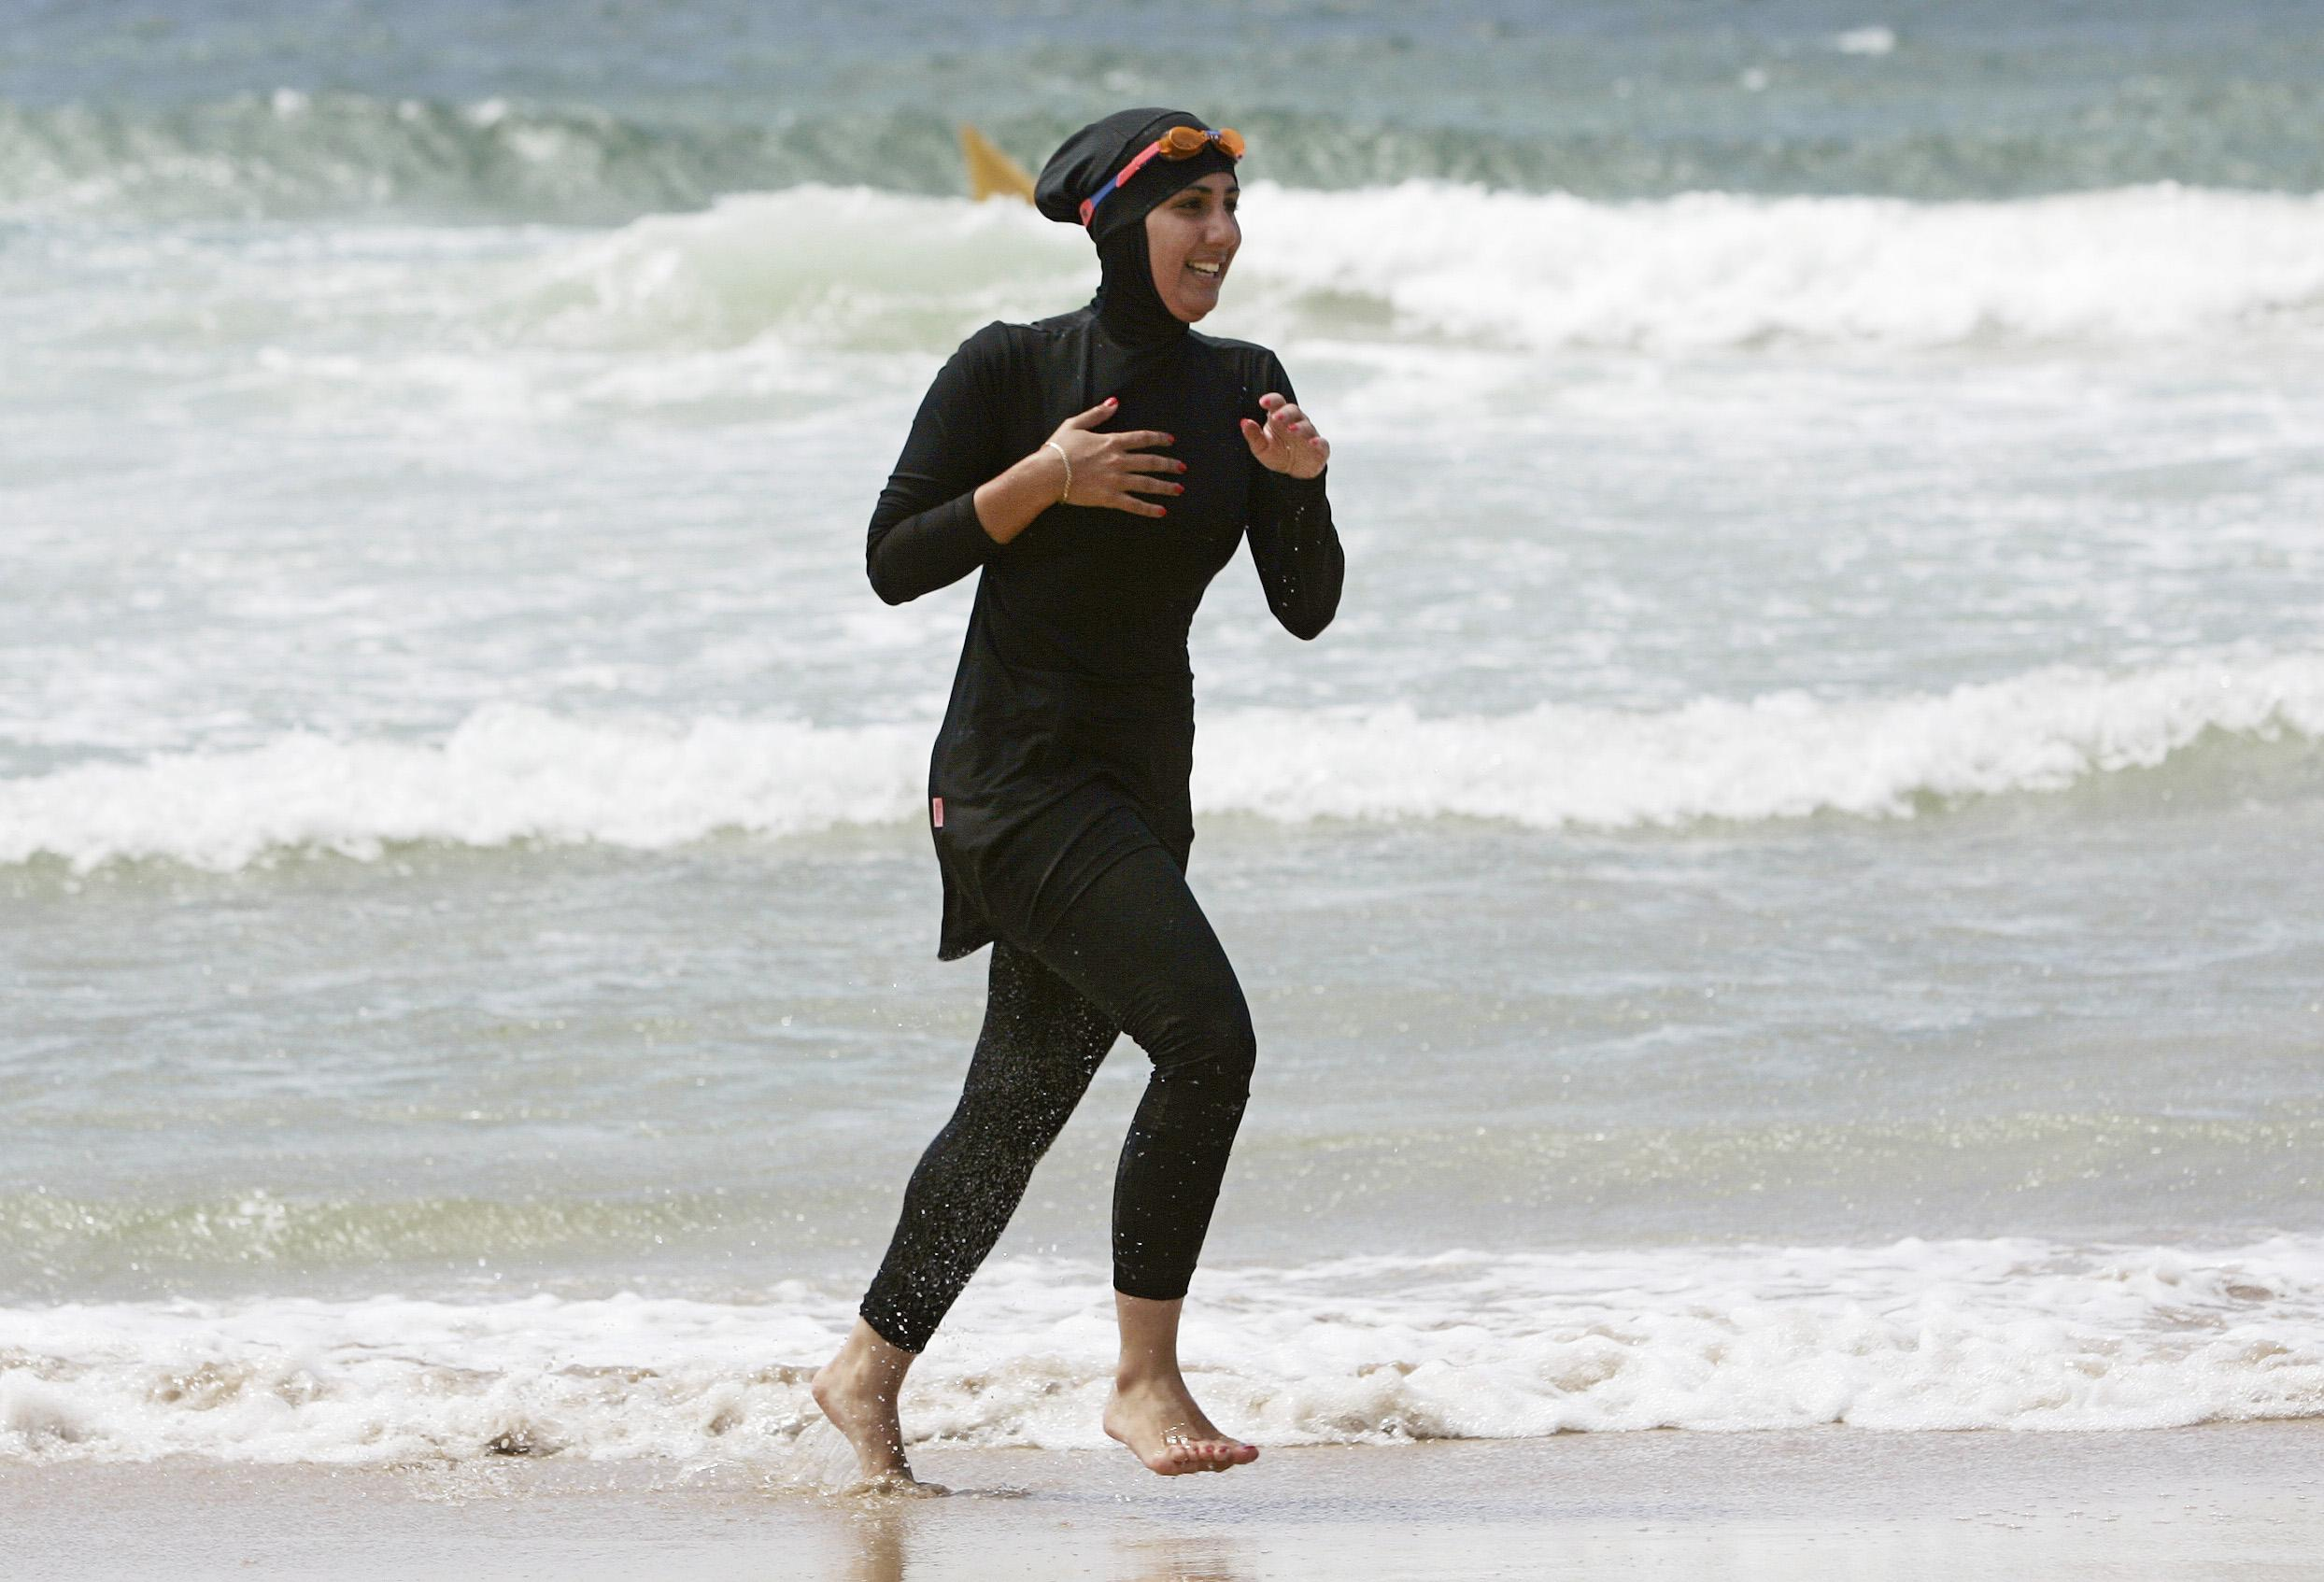 Corsica: Burkini Ban In France Continues After Beach Brawl